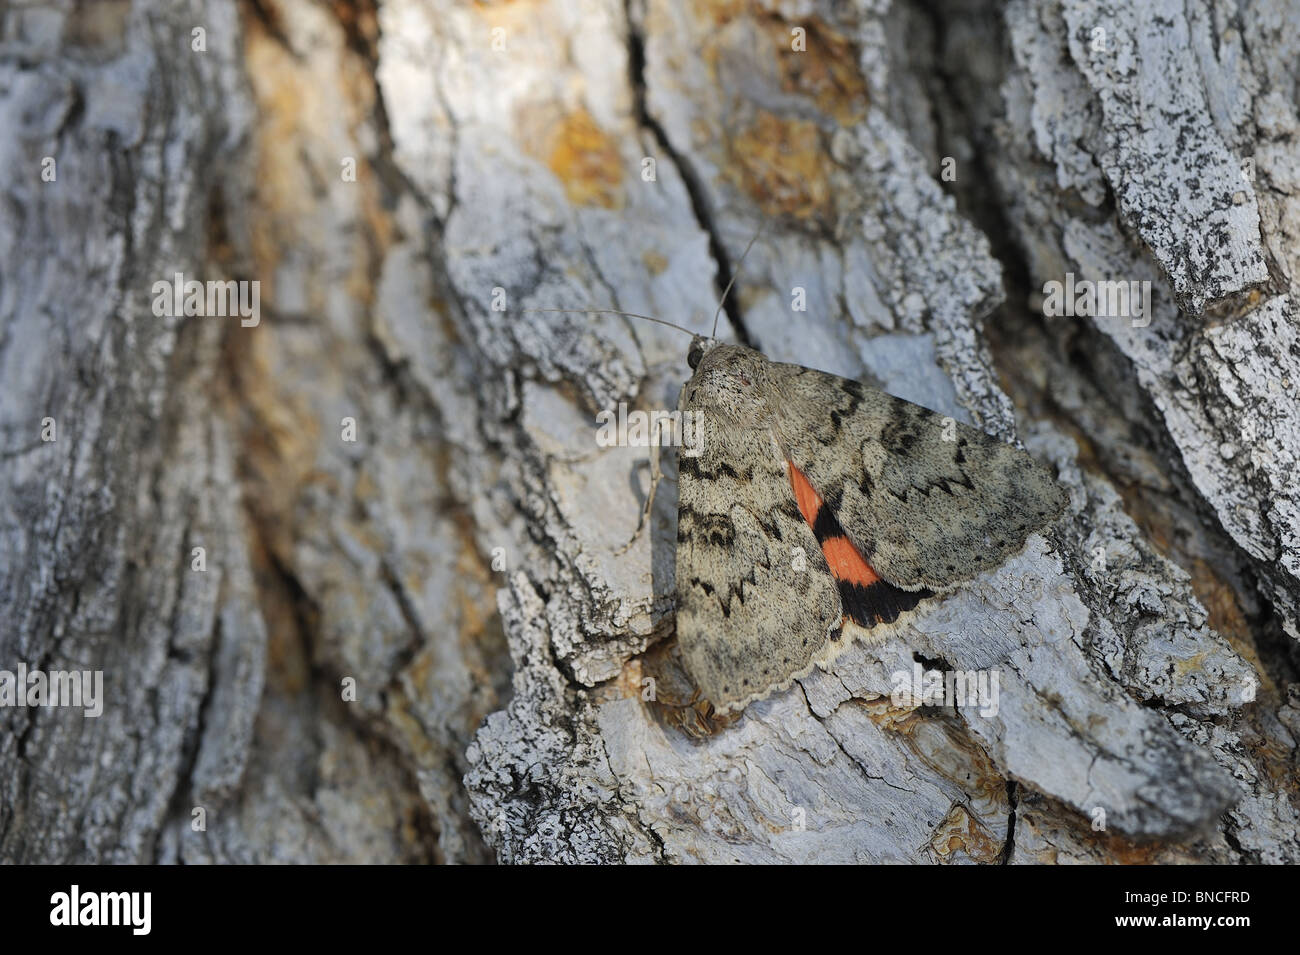 Noctuid moth (Catocala puerpera) on the bark of a tree - Provence France - Stock Image